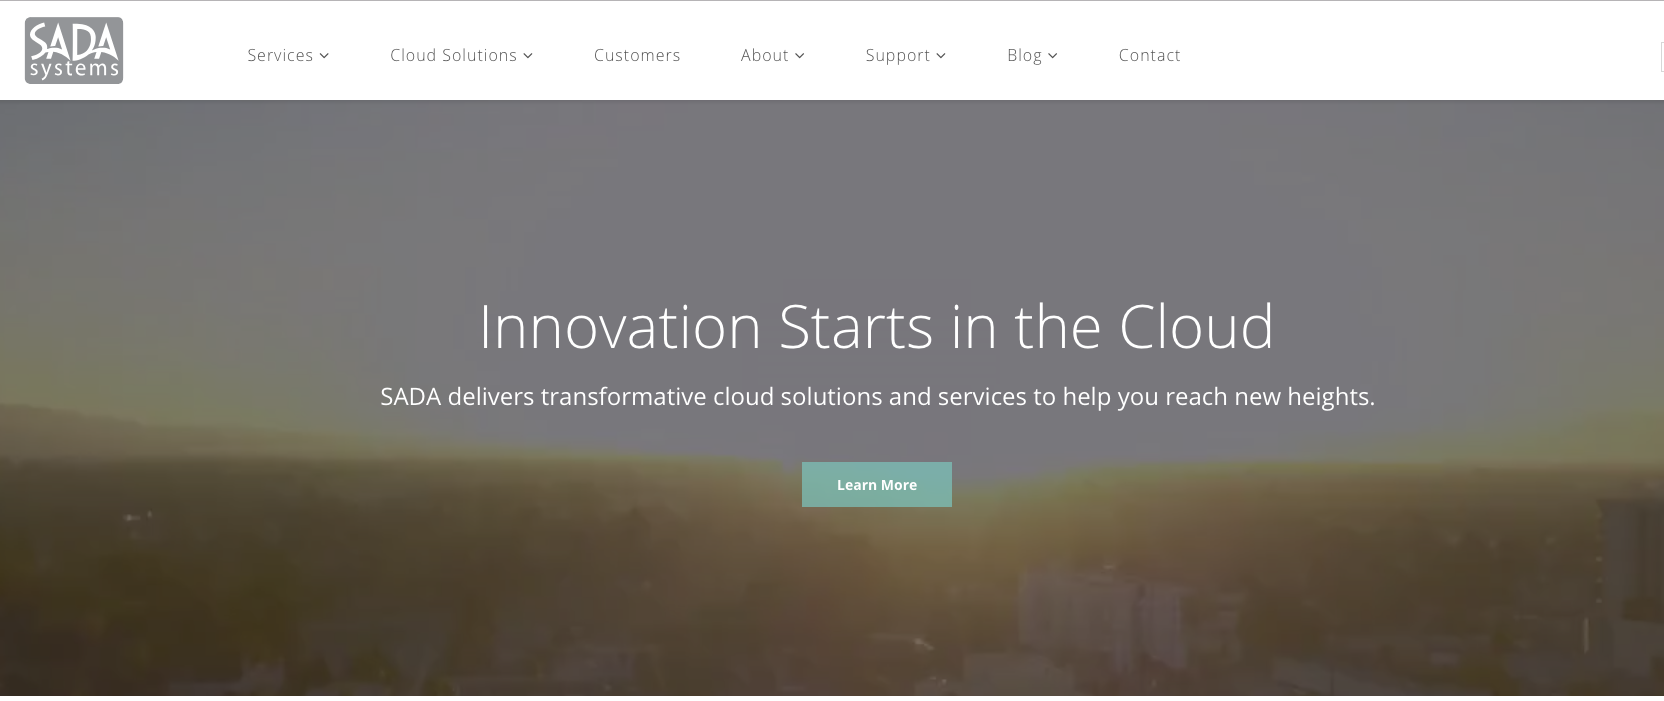 """SADA Systems homepage with a hero message that says """"Innovation Starts in the Cloud: SADA delivers transformative cloud solutions and services to help you reach new heights."""""""